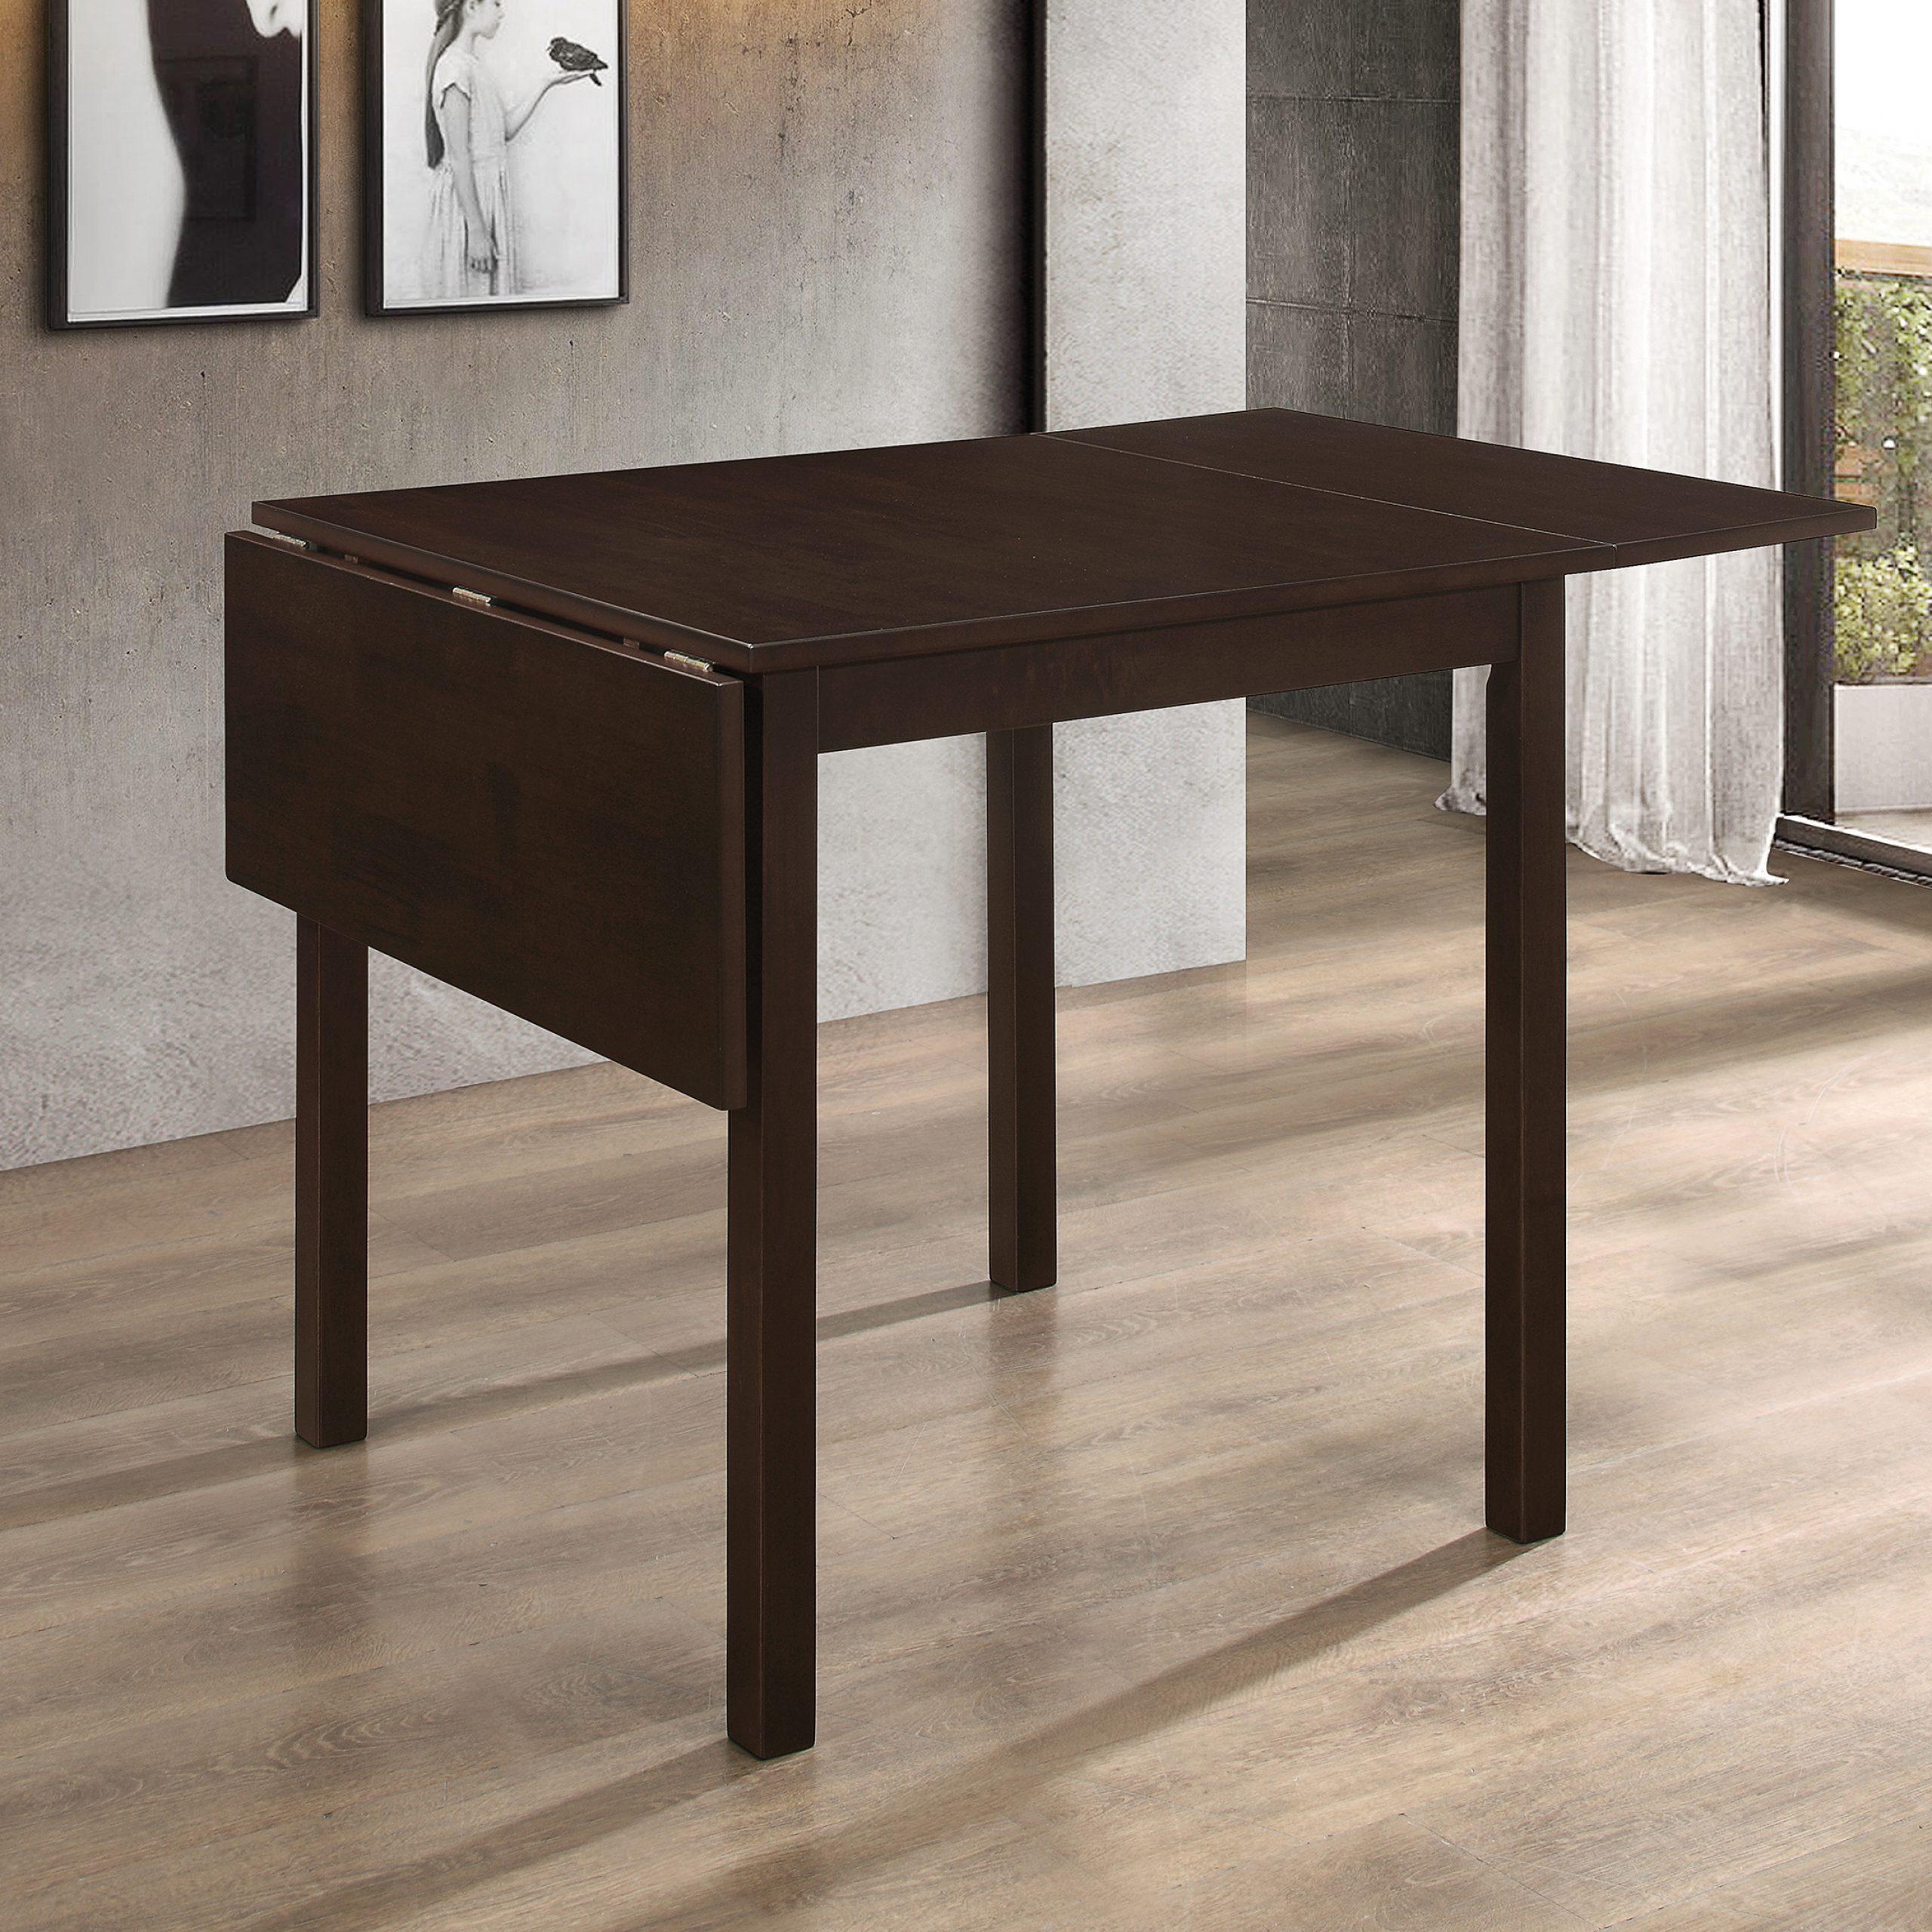 Kelso Rectangular Dining Table With Drop Leaf Cappuccino Intended For Well Known Transitional 4 Seating Drop Leaf Casual Dining Tables (View 22 of 30)